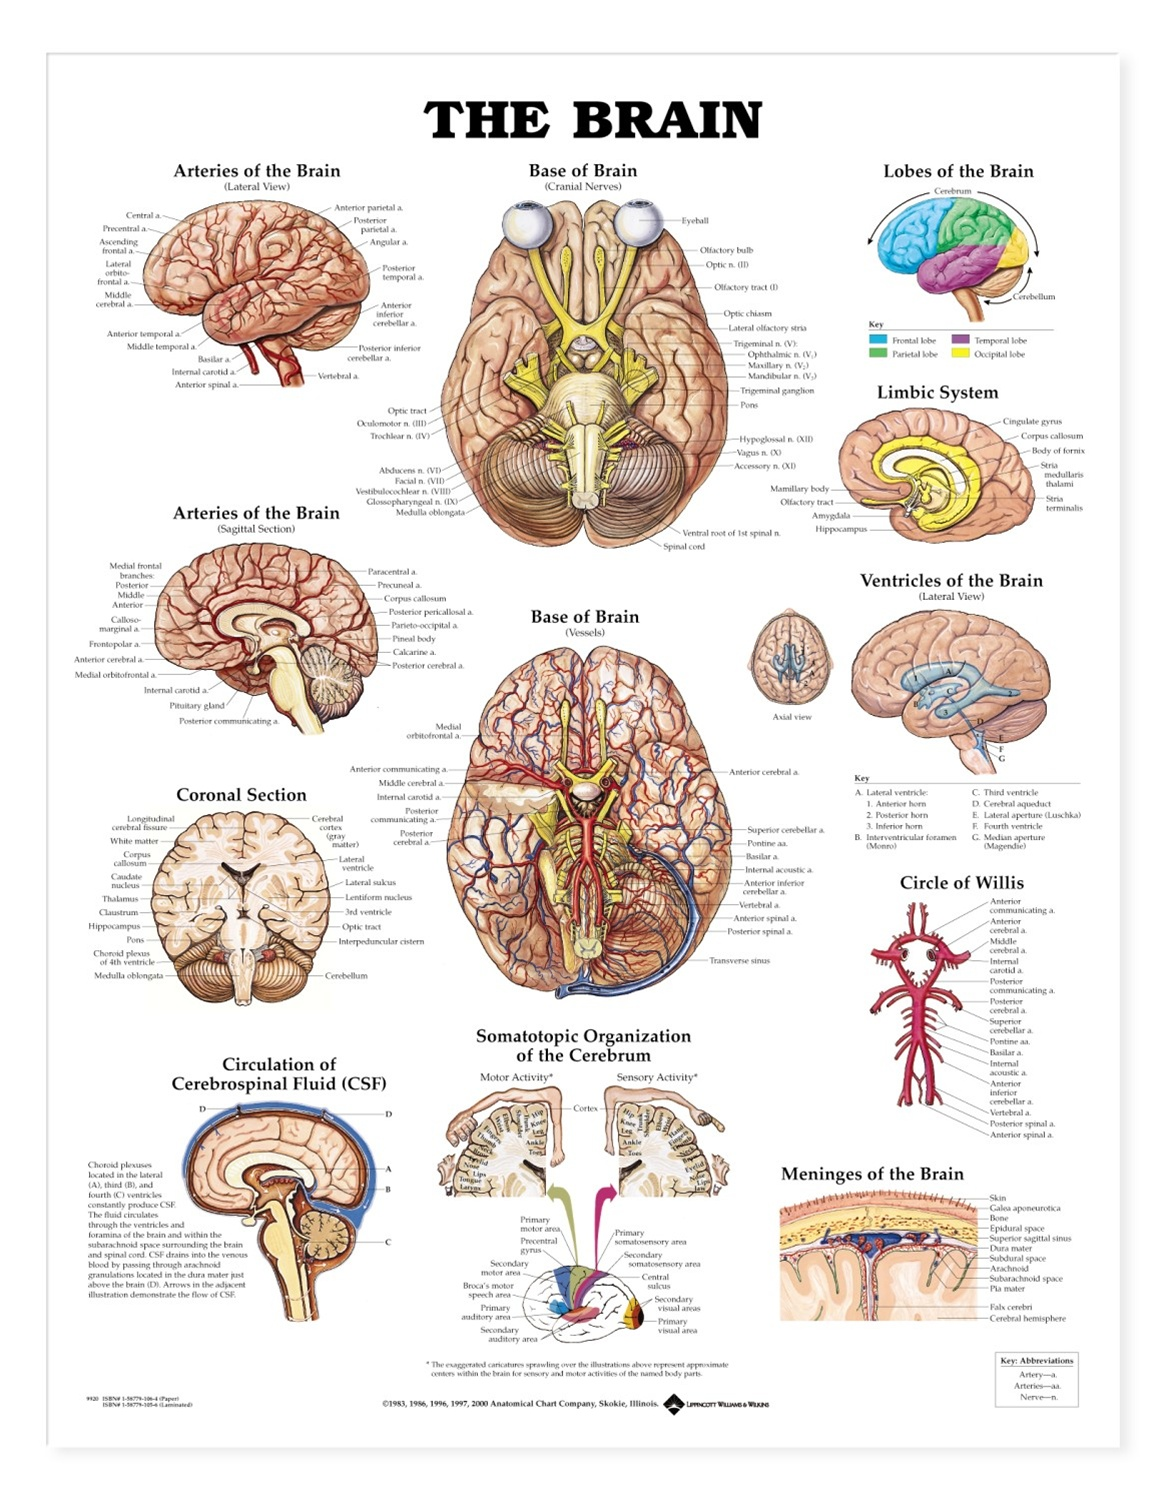 The Brain Anatomical Chart - Anatomy Models and Anatomical Charts